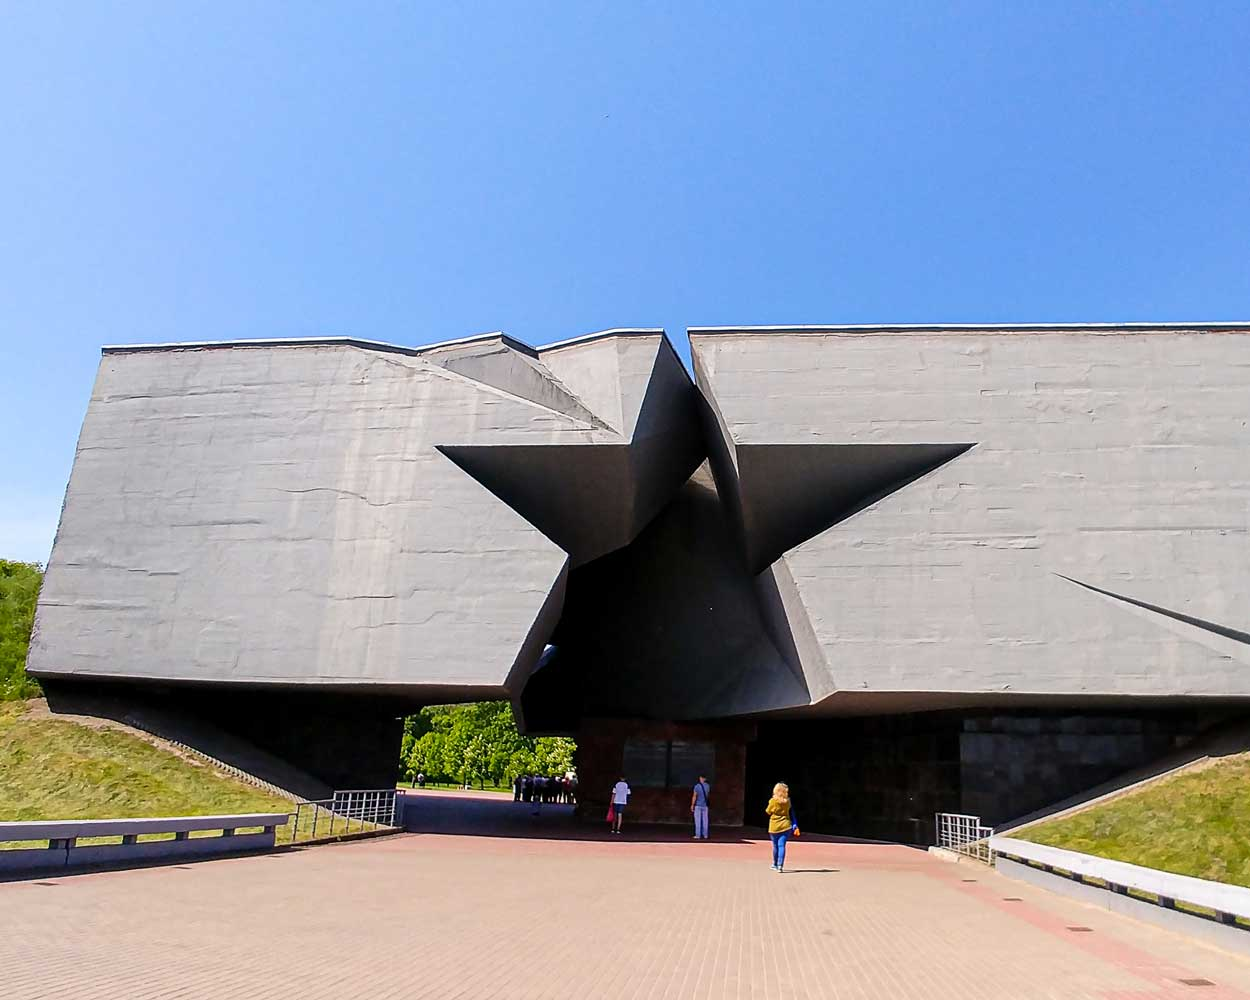 Star-shaped gate to enter the Brest Fortress in Belarus